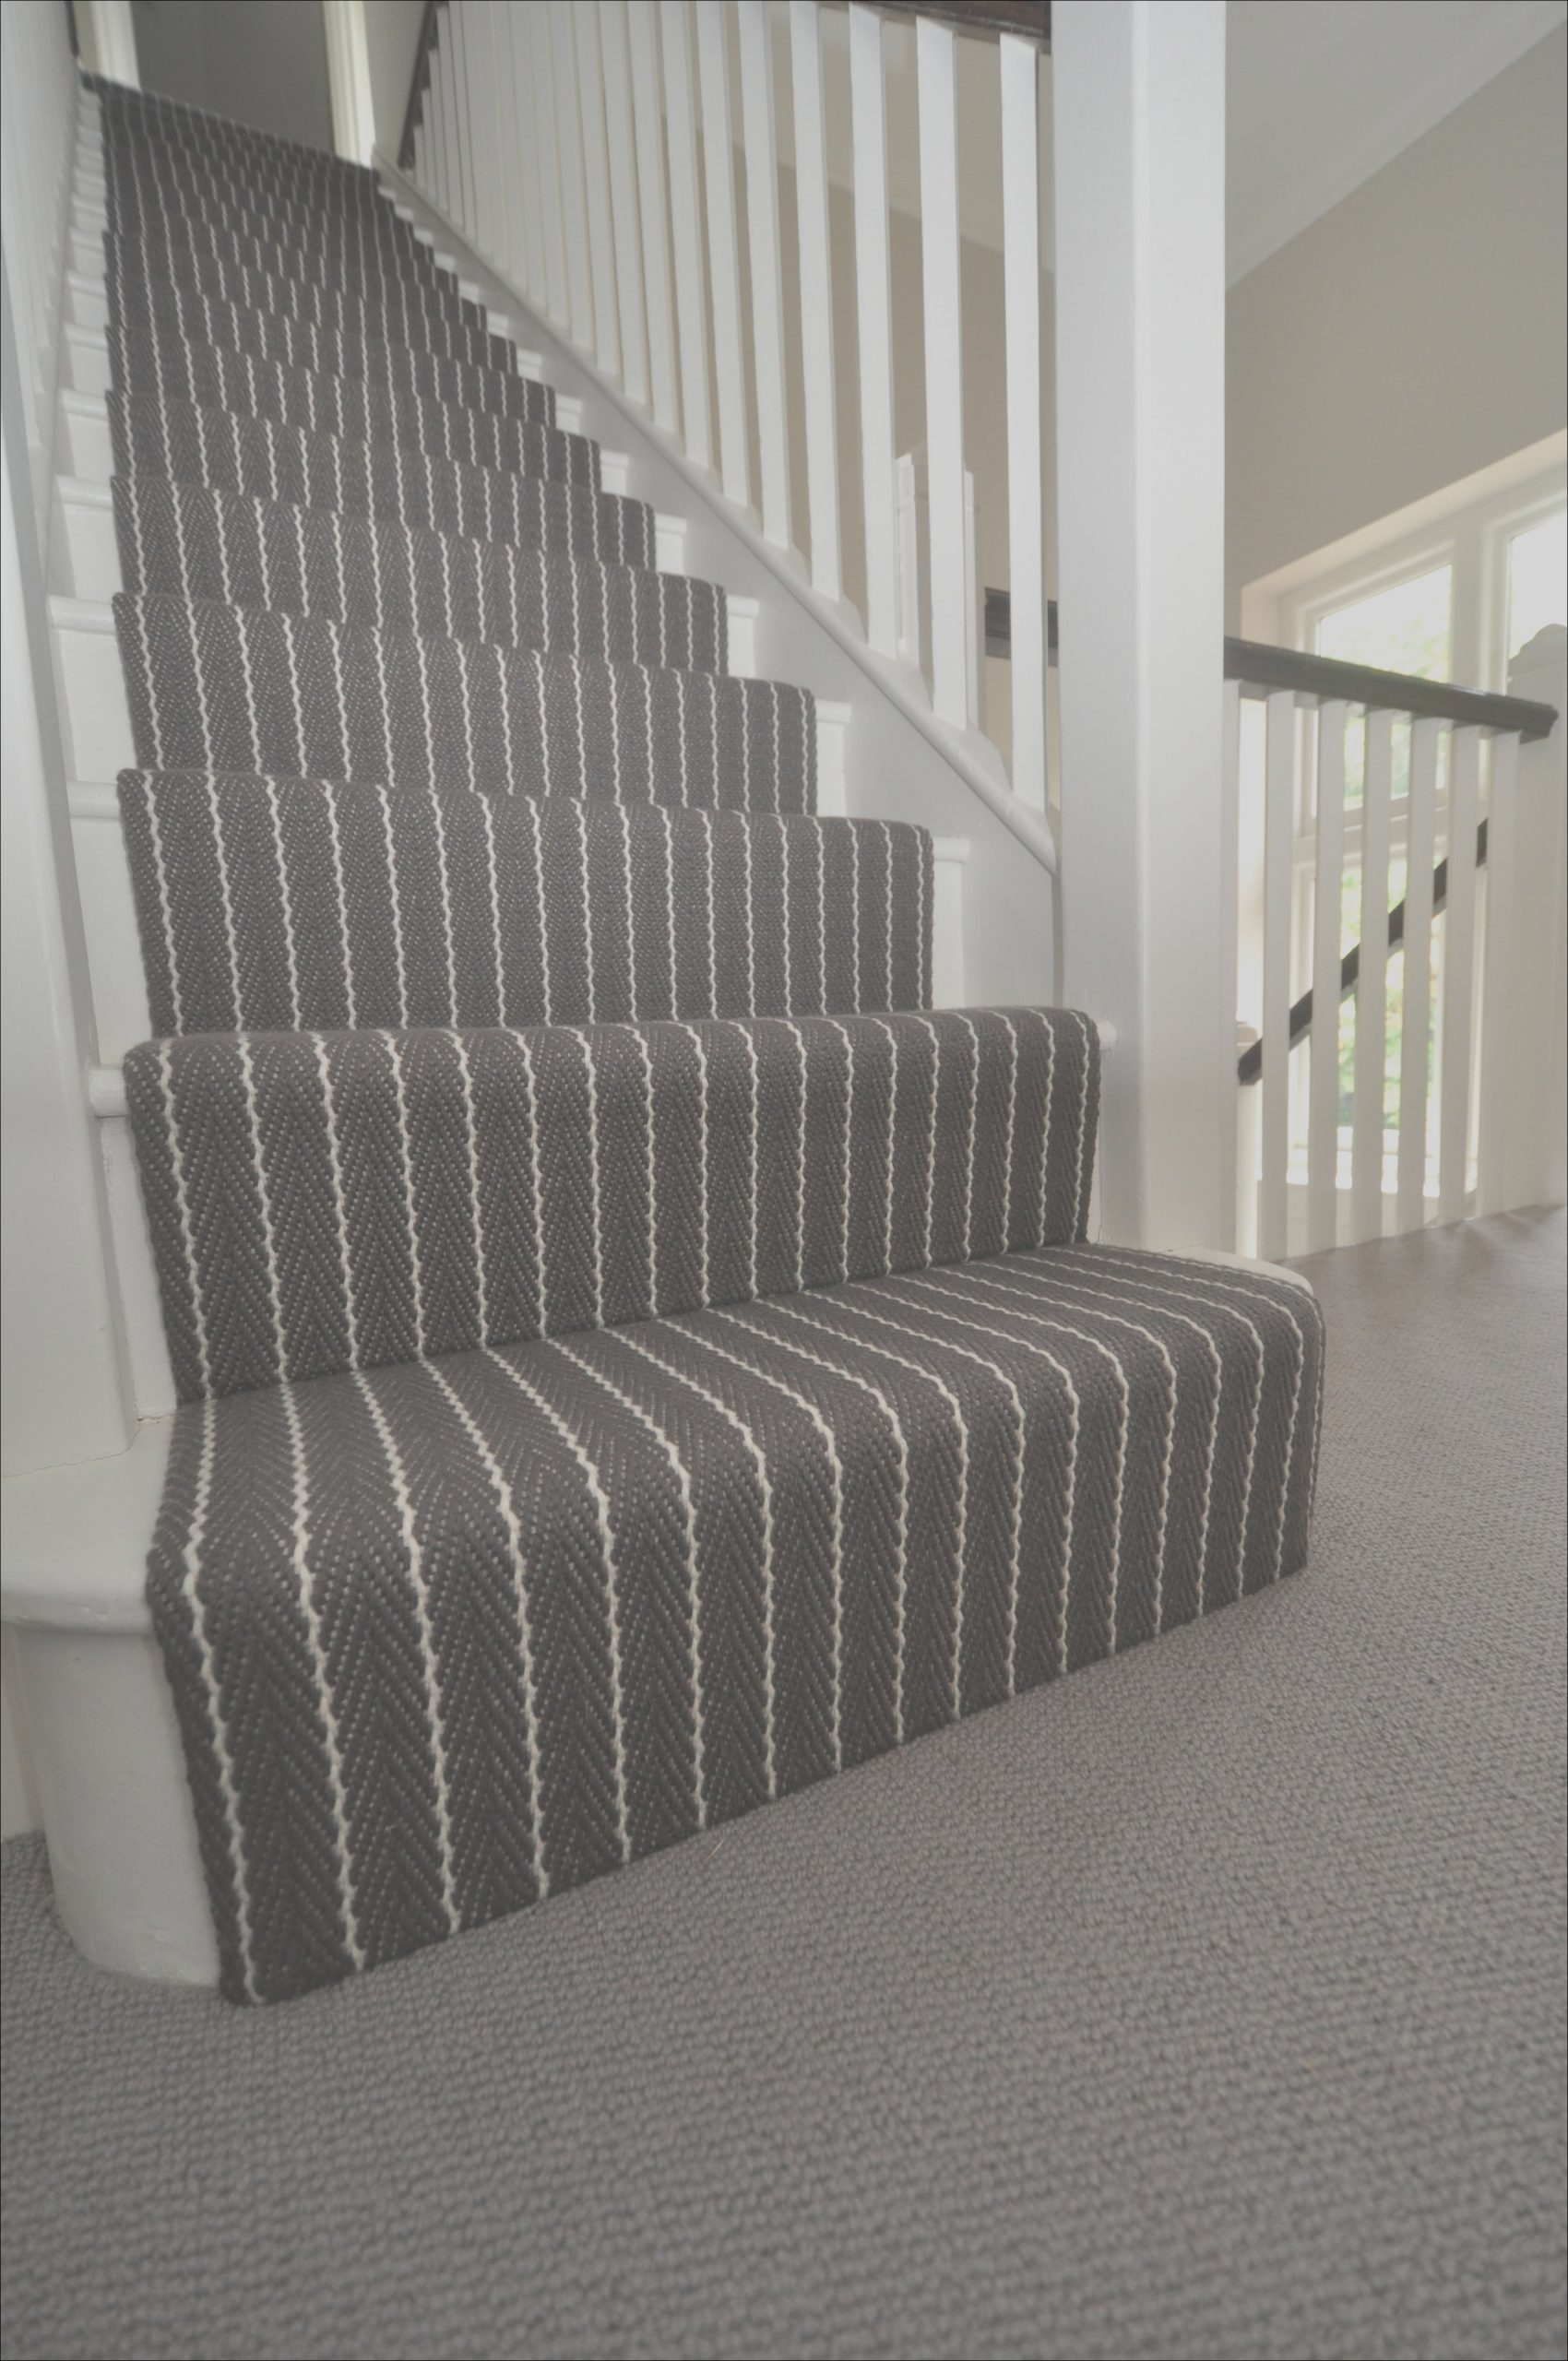 images of striped carpets on stairs